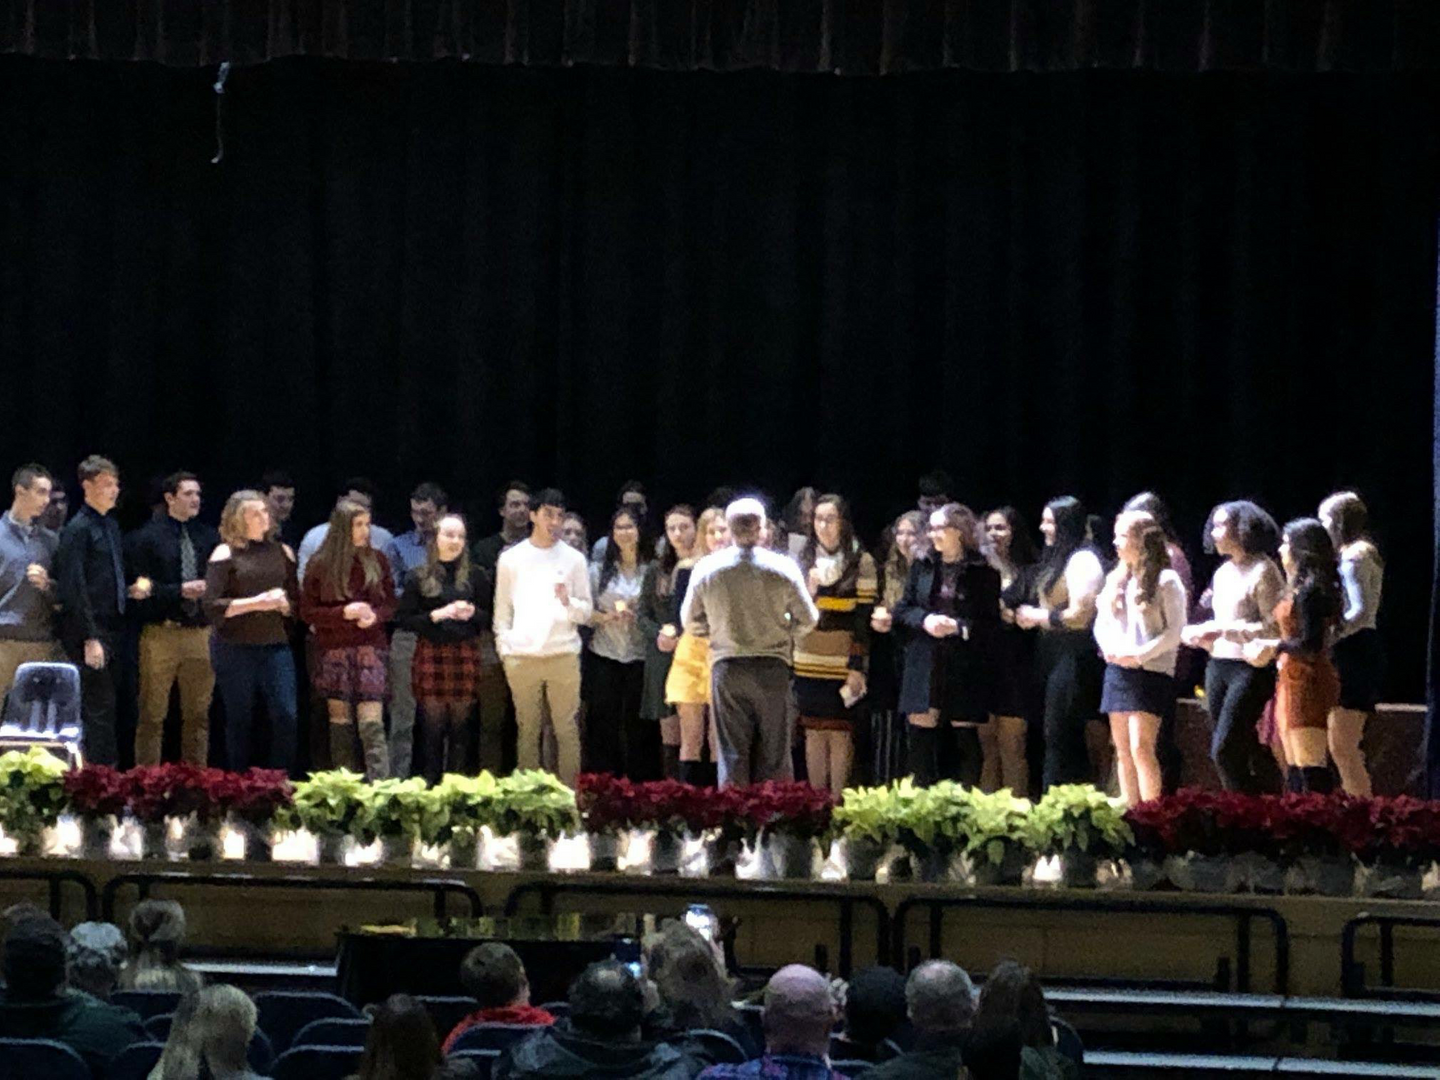 Italian national honor society induction ceremony